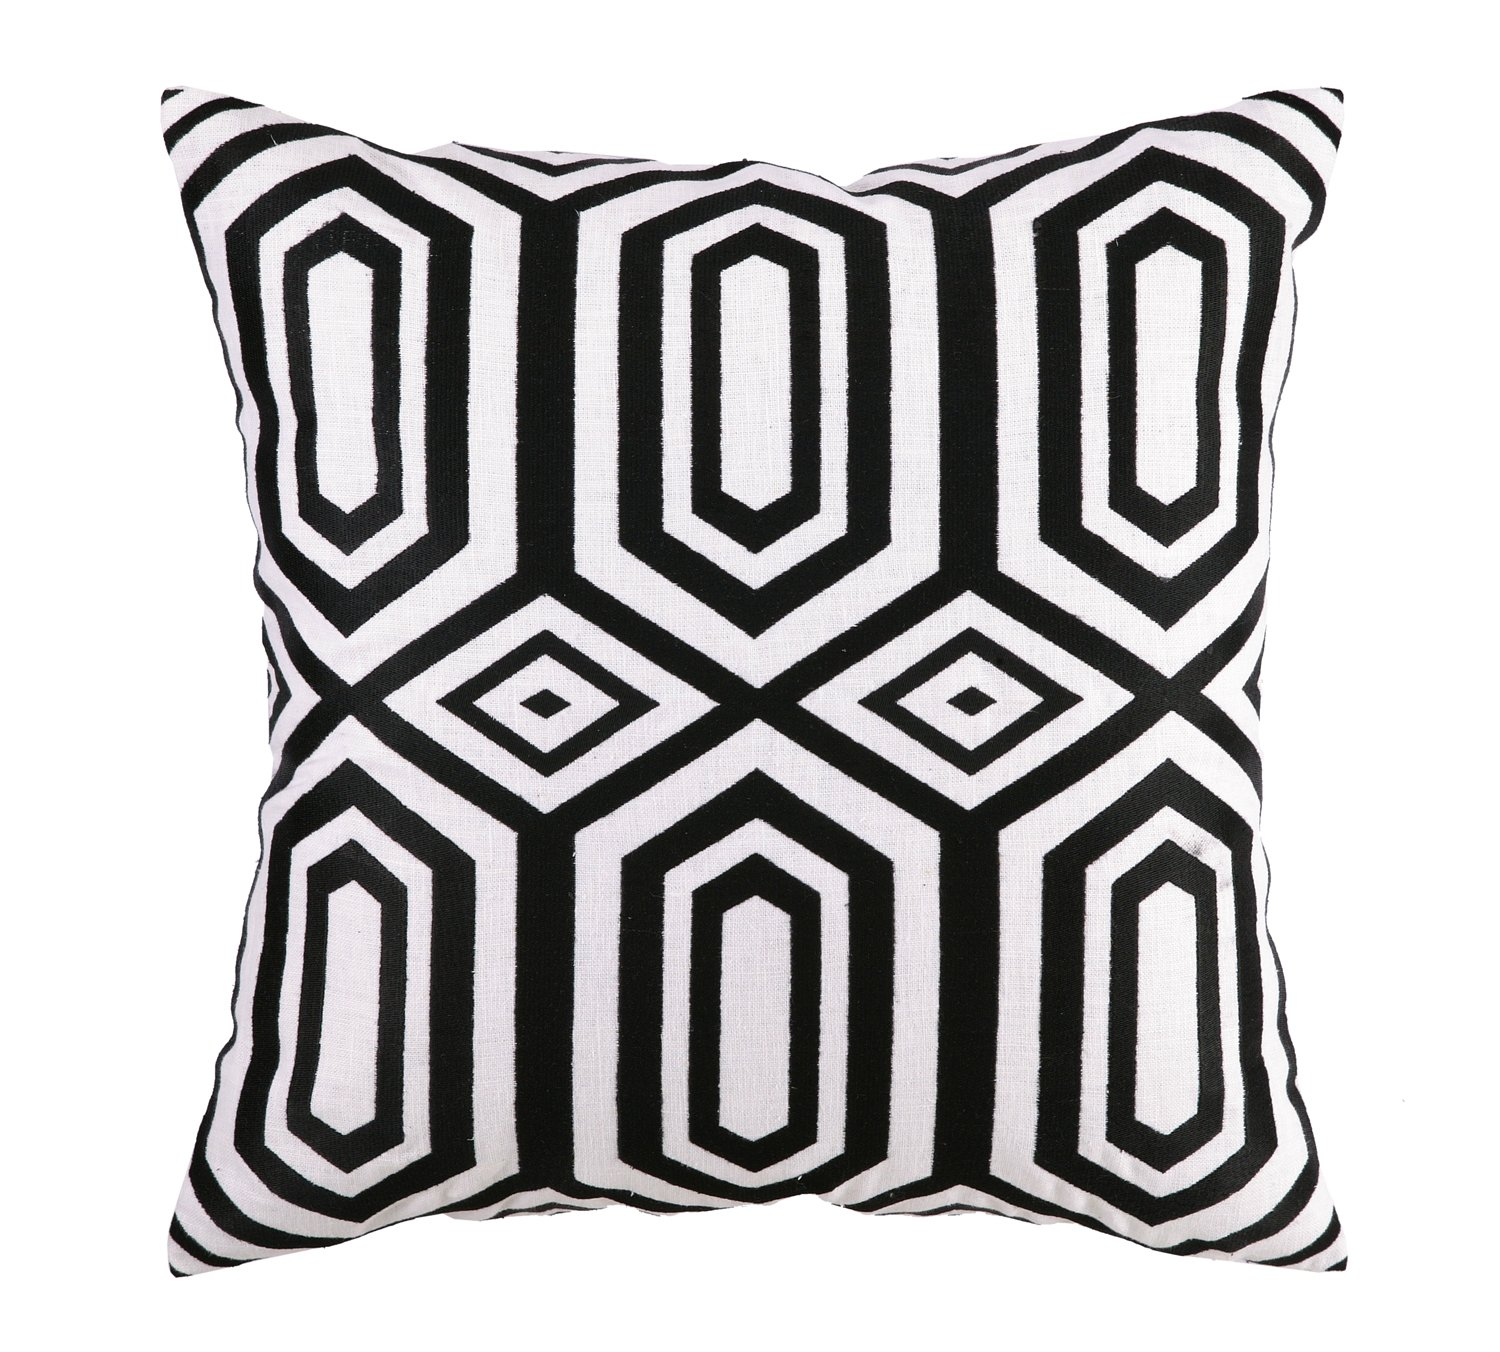 Jennifer Paganelli Hotel SOHO Linen Embroidery Pillow, 20 by 20-Inch, Black